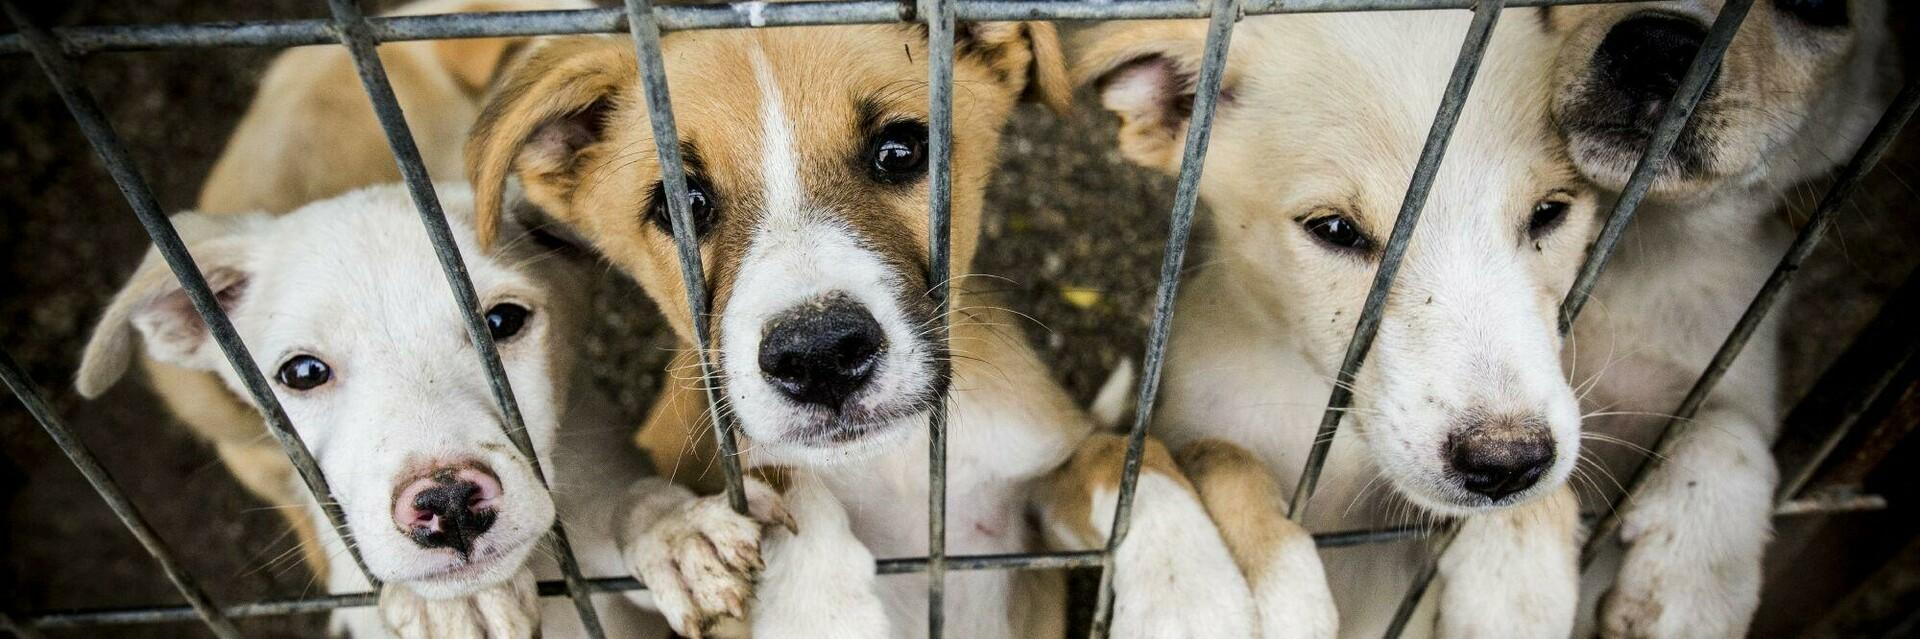 Puppies in a shelter